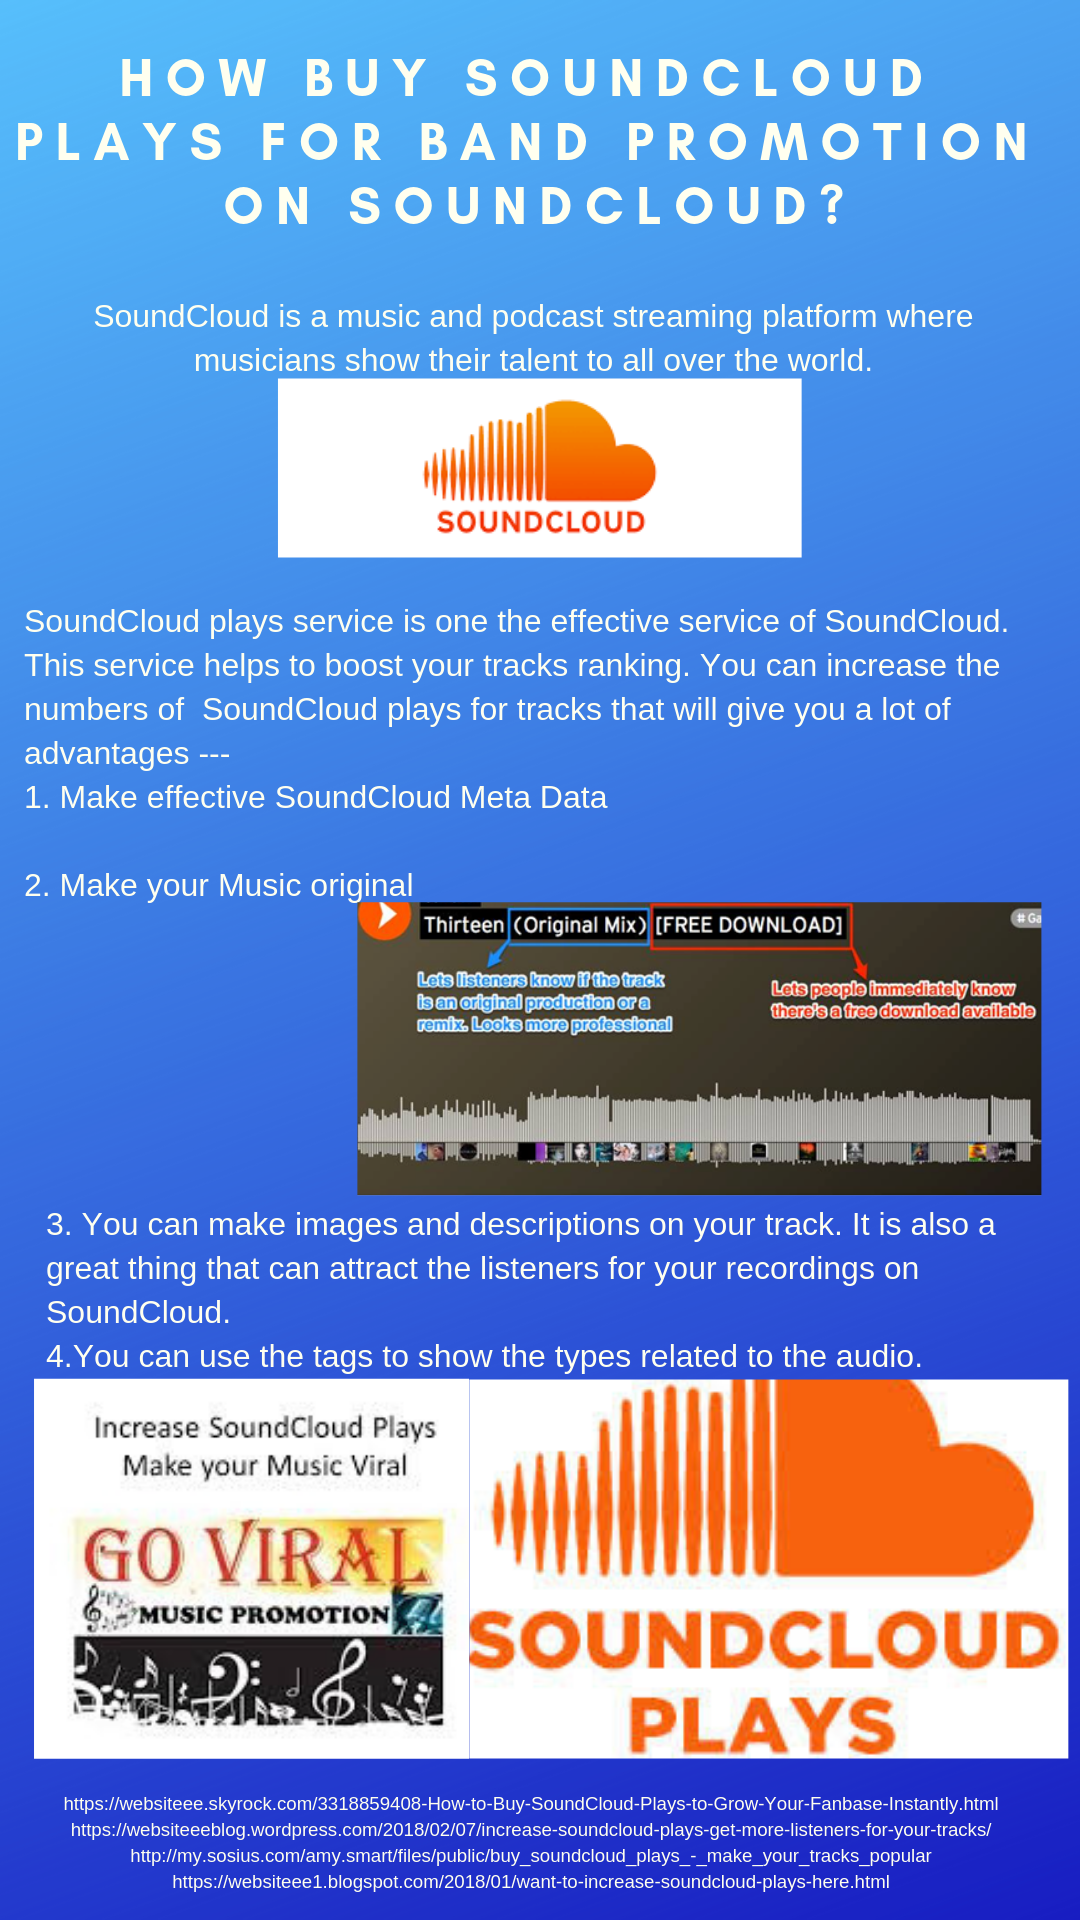 Do you want to promote your music band on SoundCloud? You